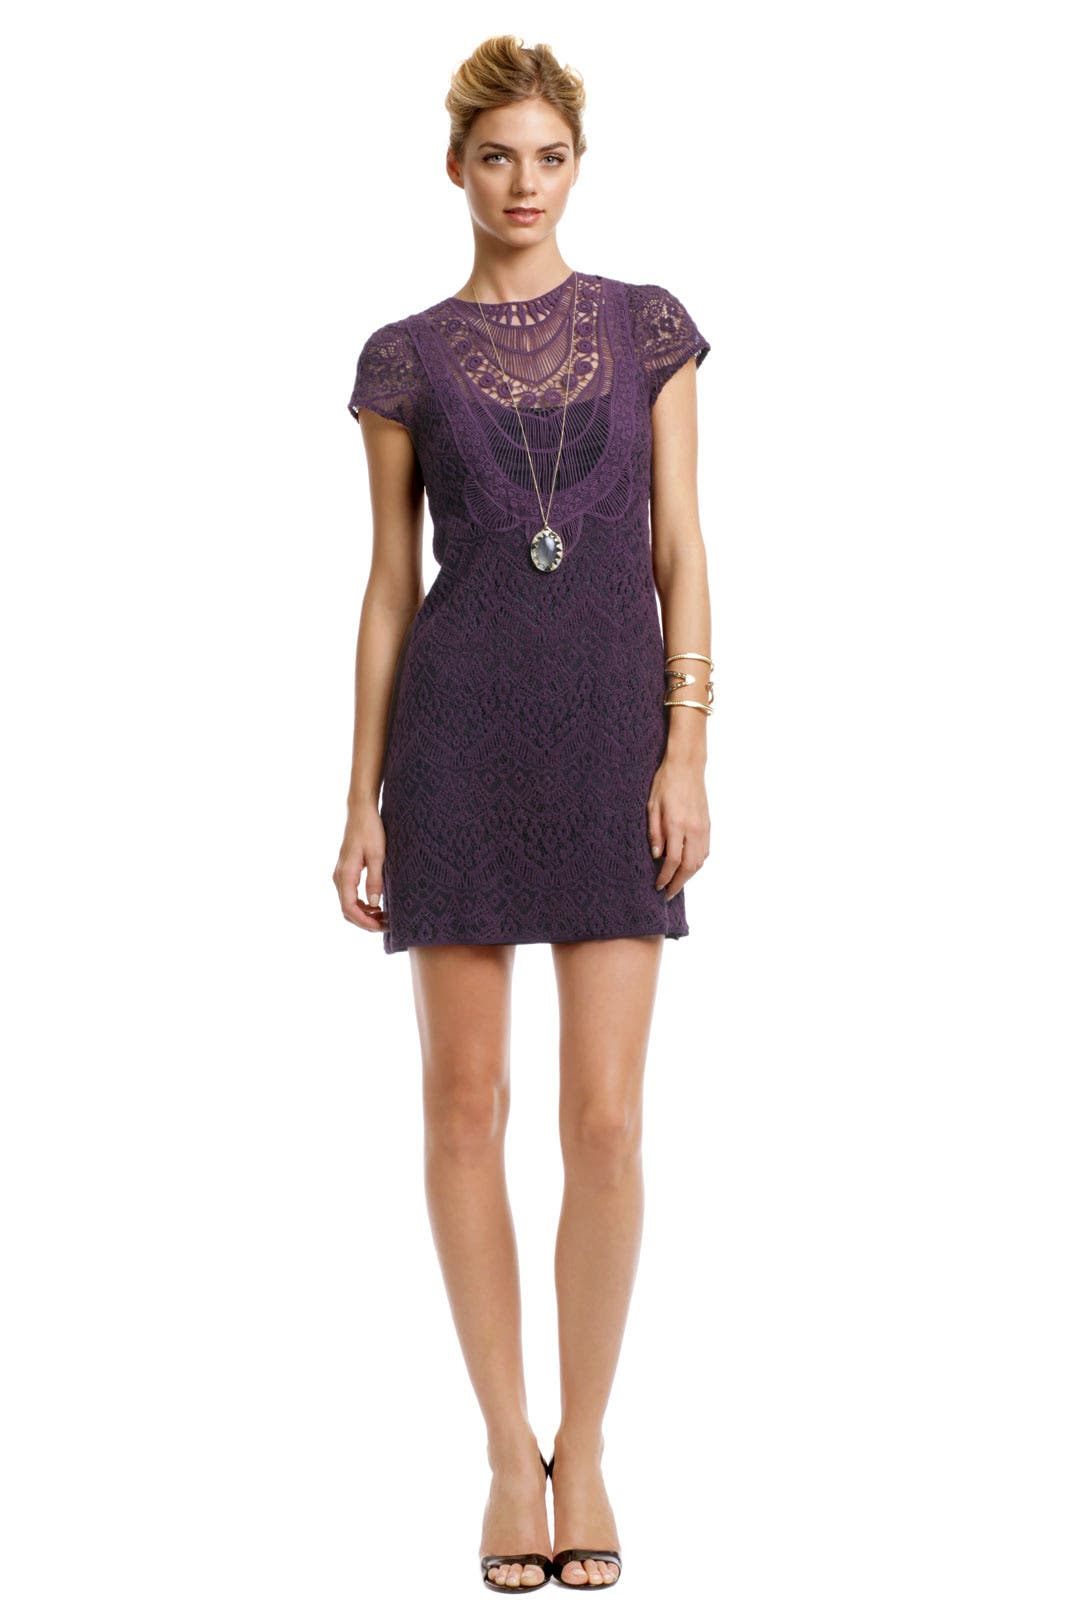 Rustic Plum Lace Dress by Nanette Lepore for $70 | Rent the Runway